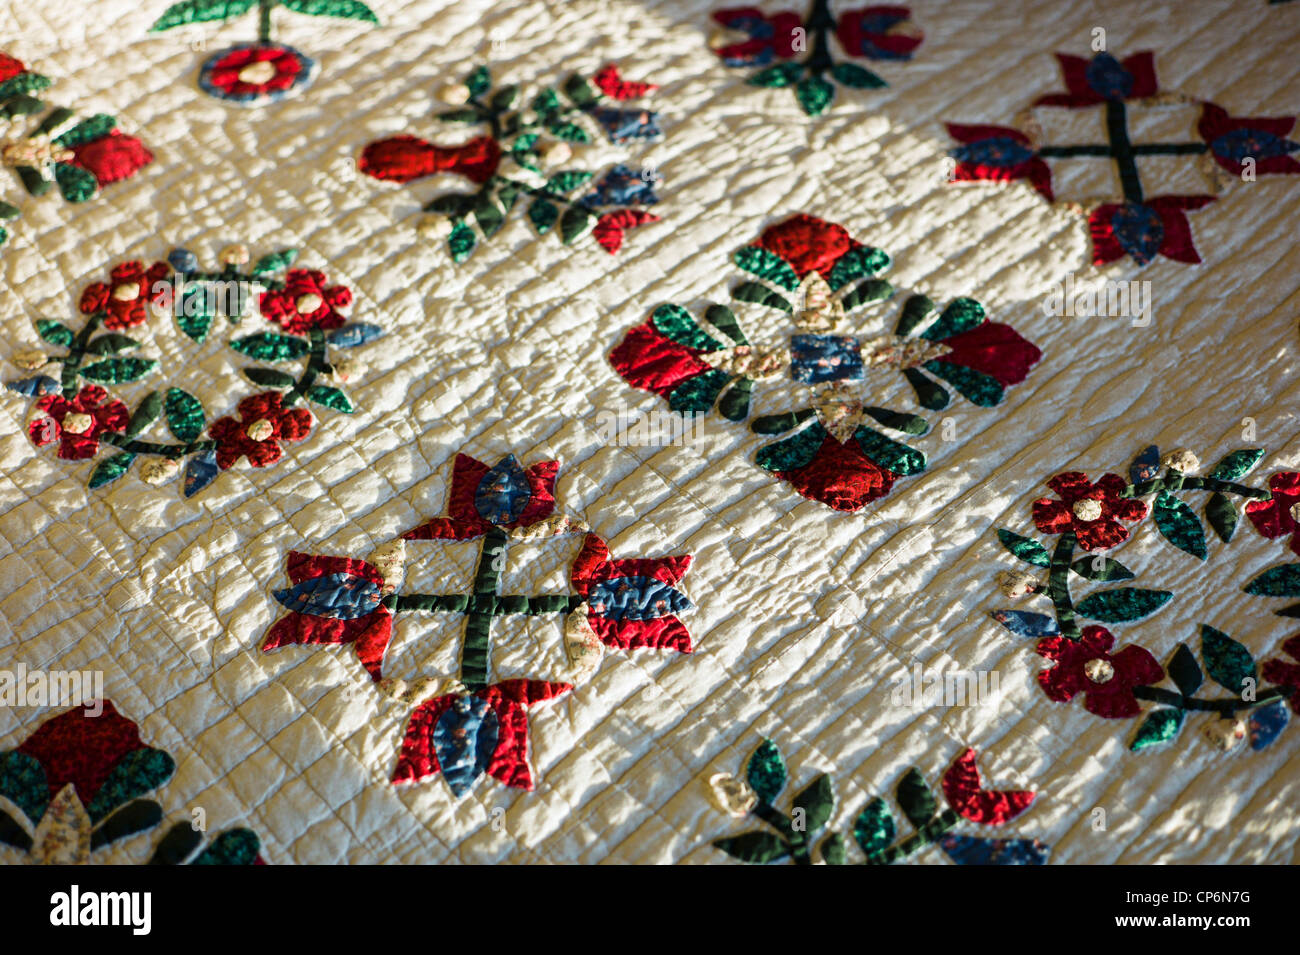 Close up detail of handmade bed quilt - Stock Image